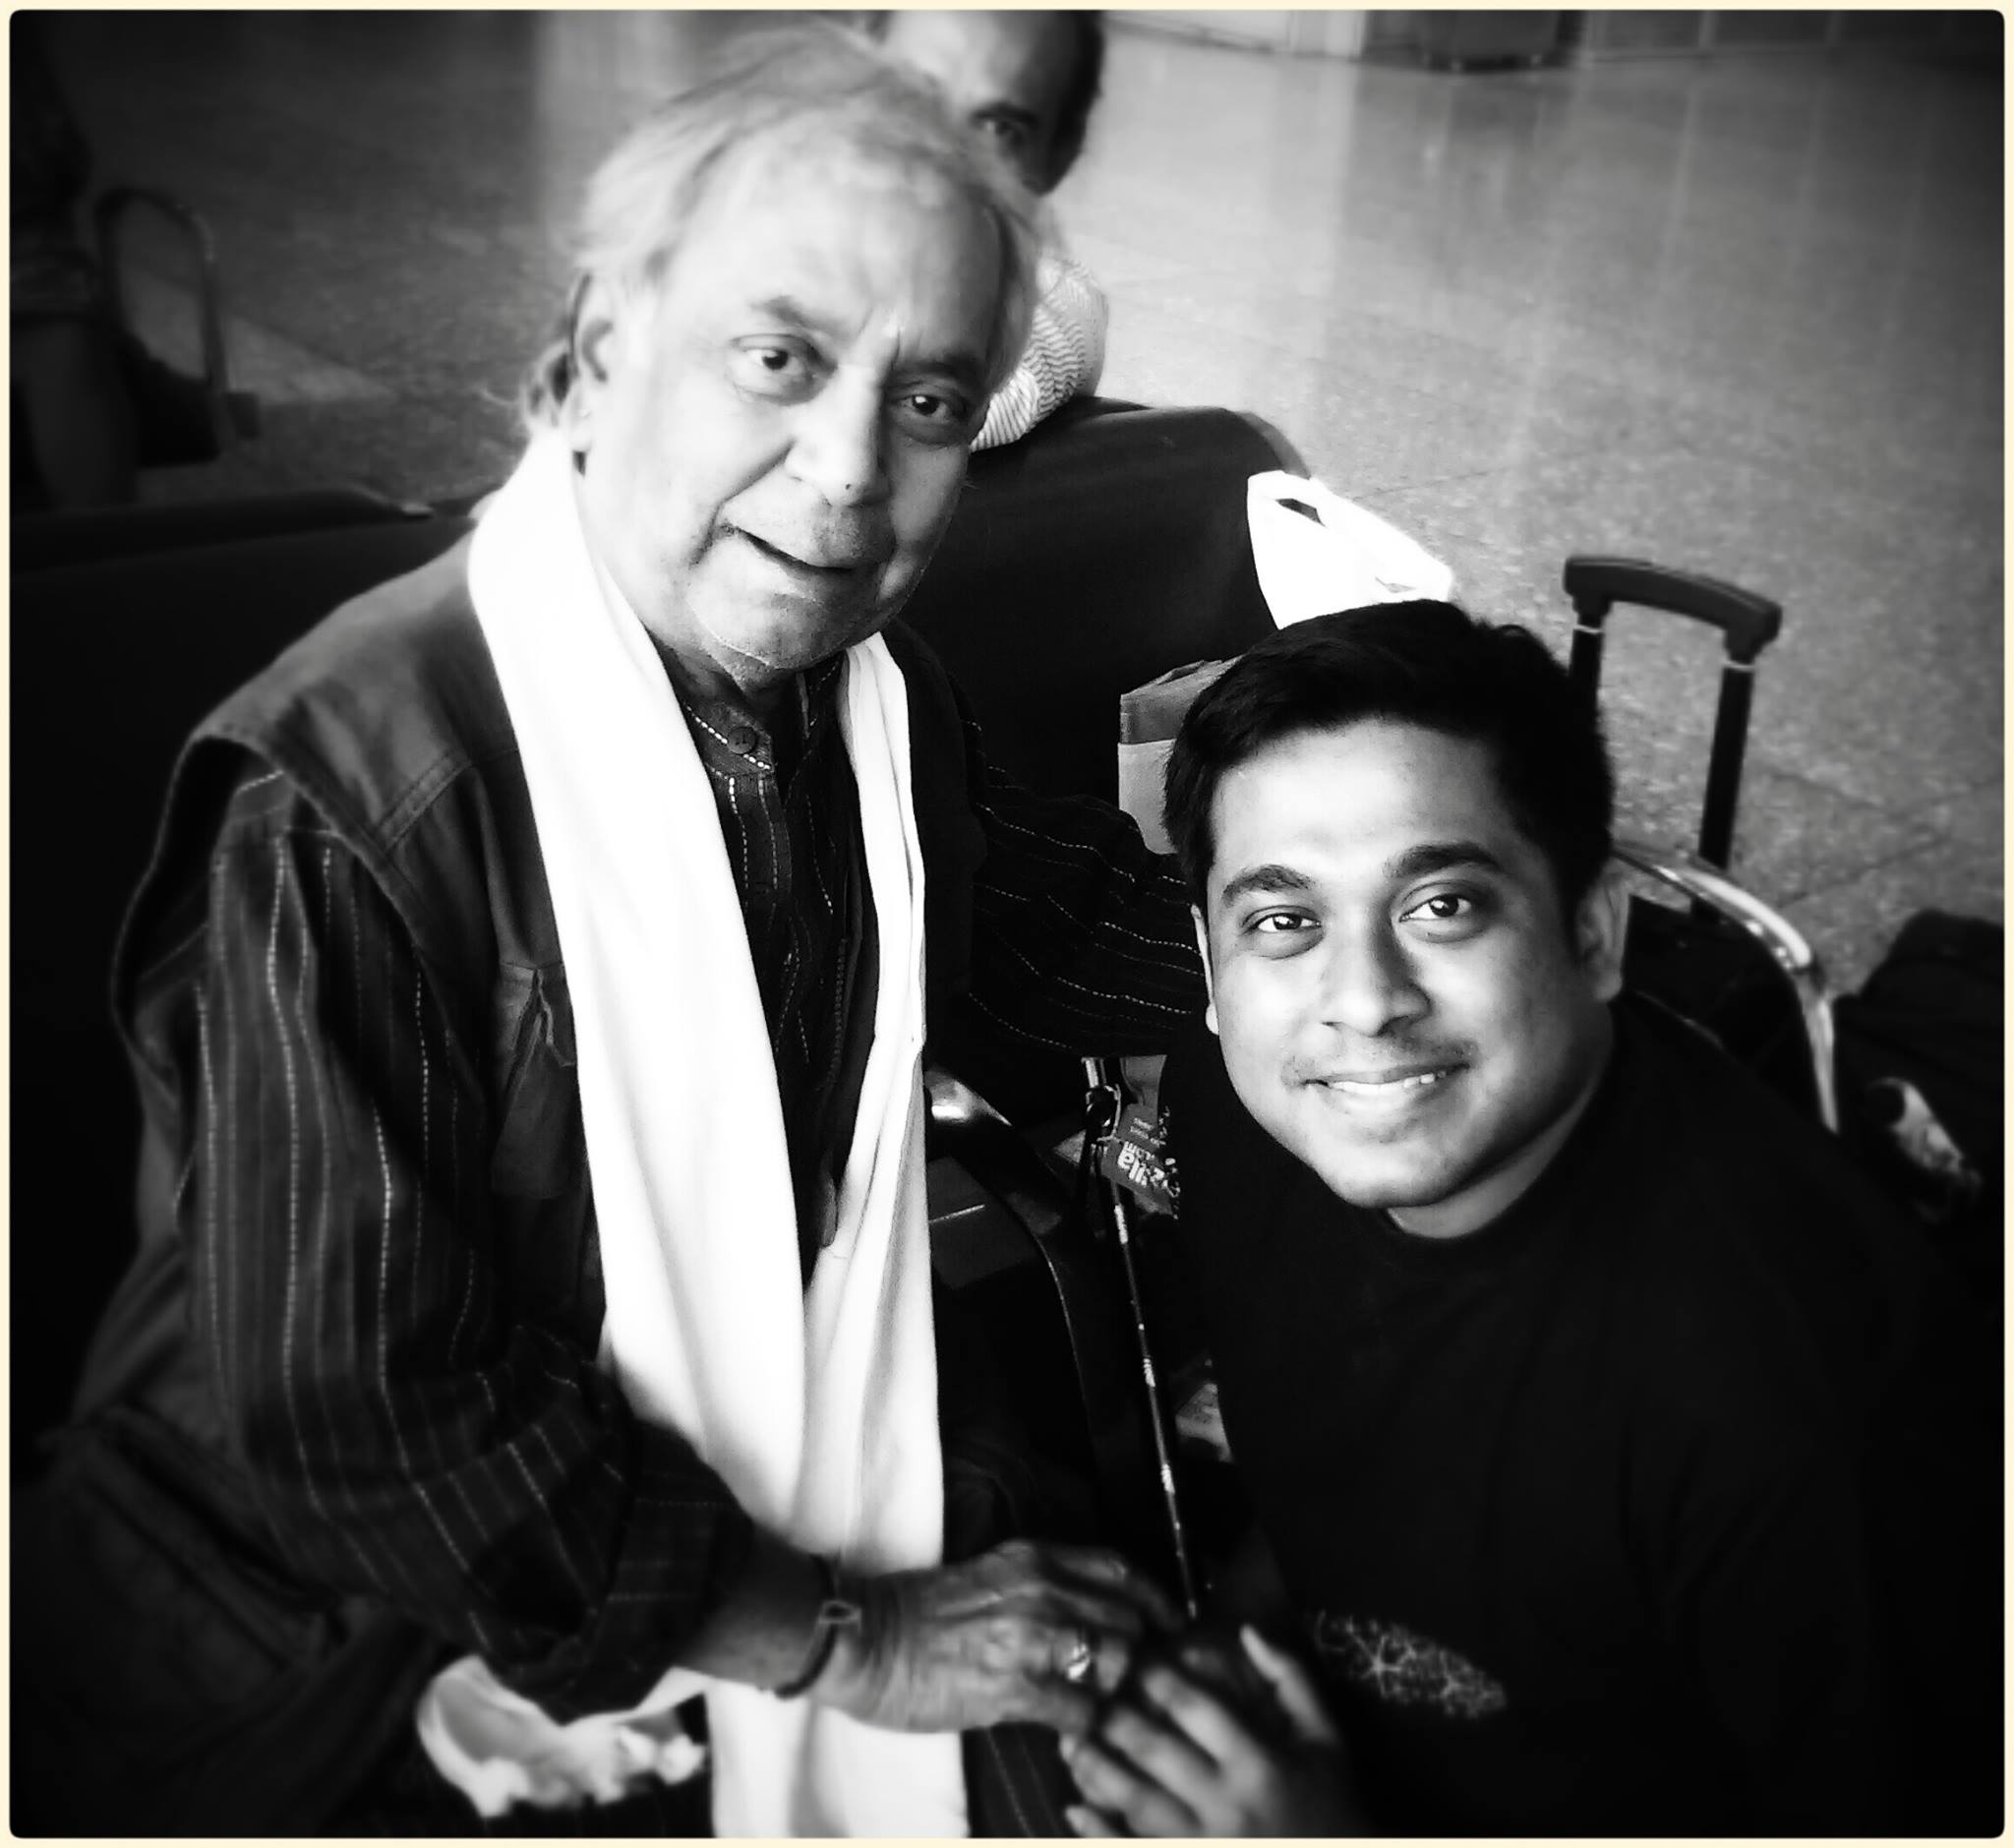 With Pt. Birju Maharaj in Kolkata